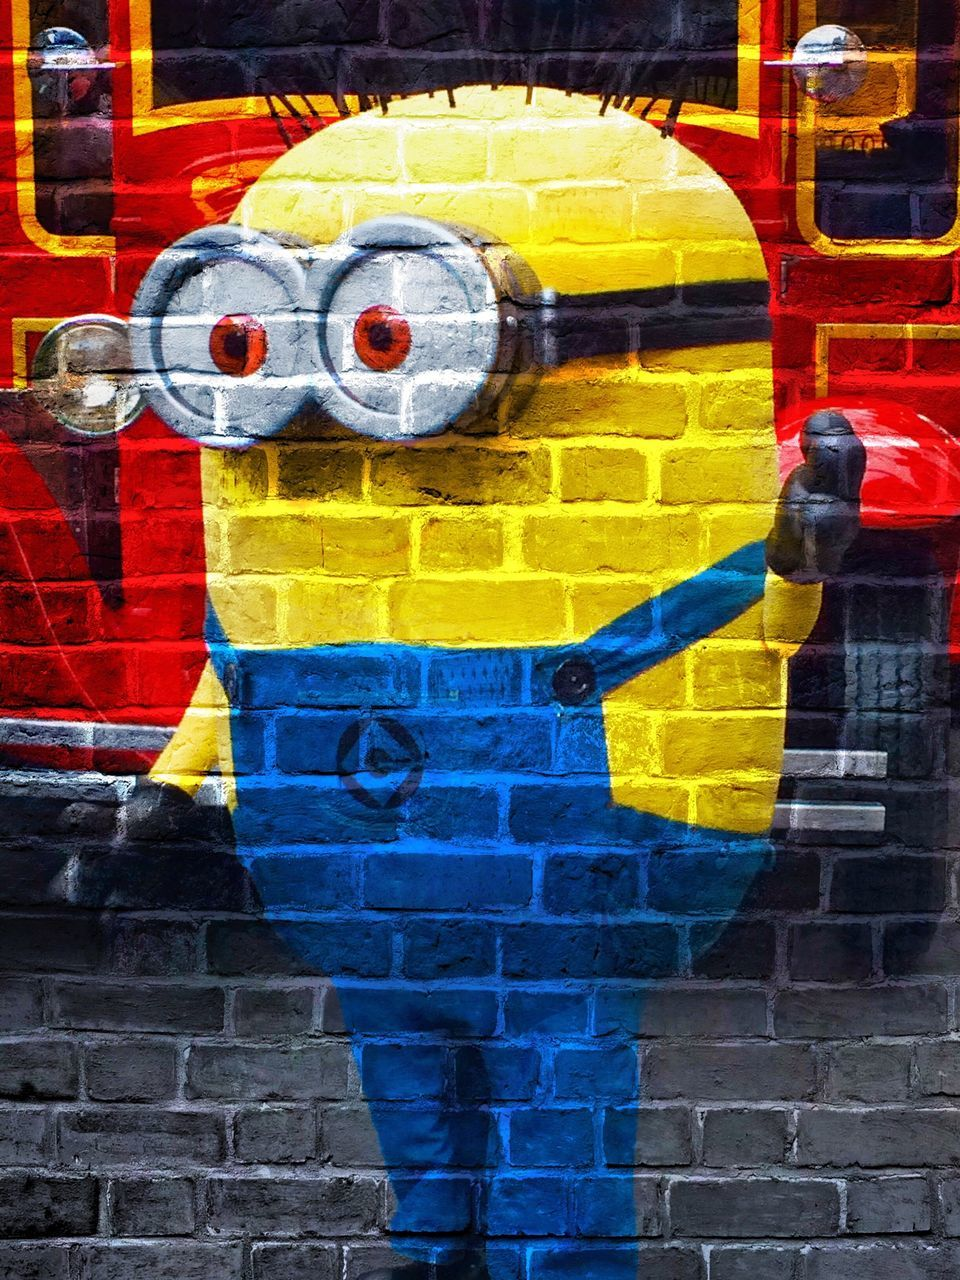 yellow, brick wall, graffiti, outdoors, day, paint, built structure, architecture, multi colored, red, human body part, building exterior, one person, aerosol can, close-up, people